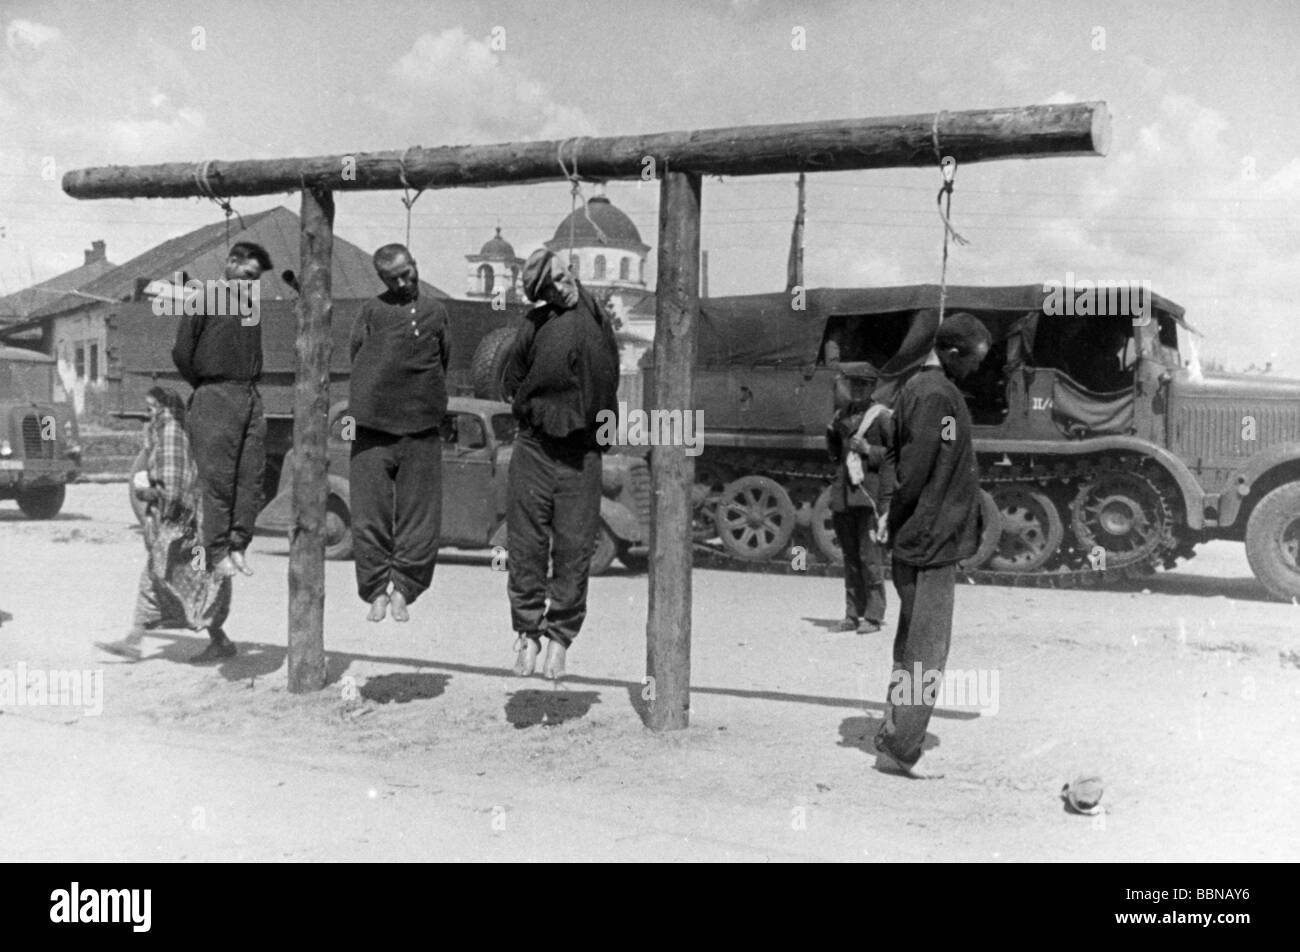 events, Second World War / WWII, Russia 1942 / 1943, partisan warfare,  hanged Soviet partisans at Merefa near Kharkov, summer 1942, in the  background, ...